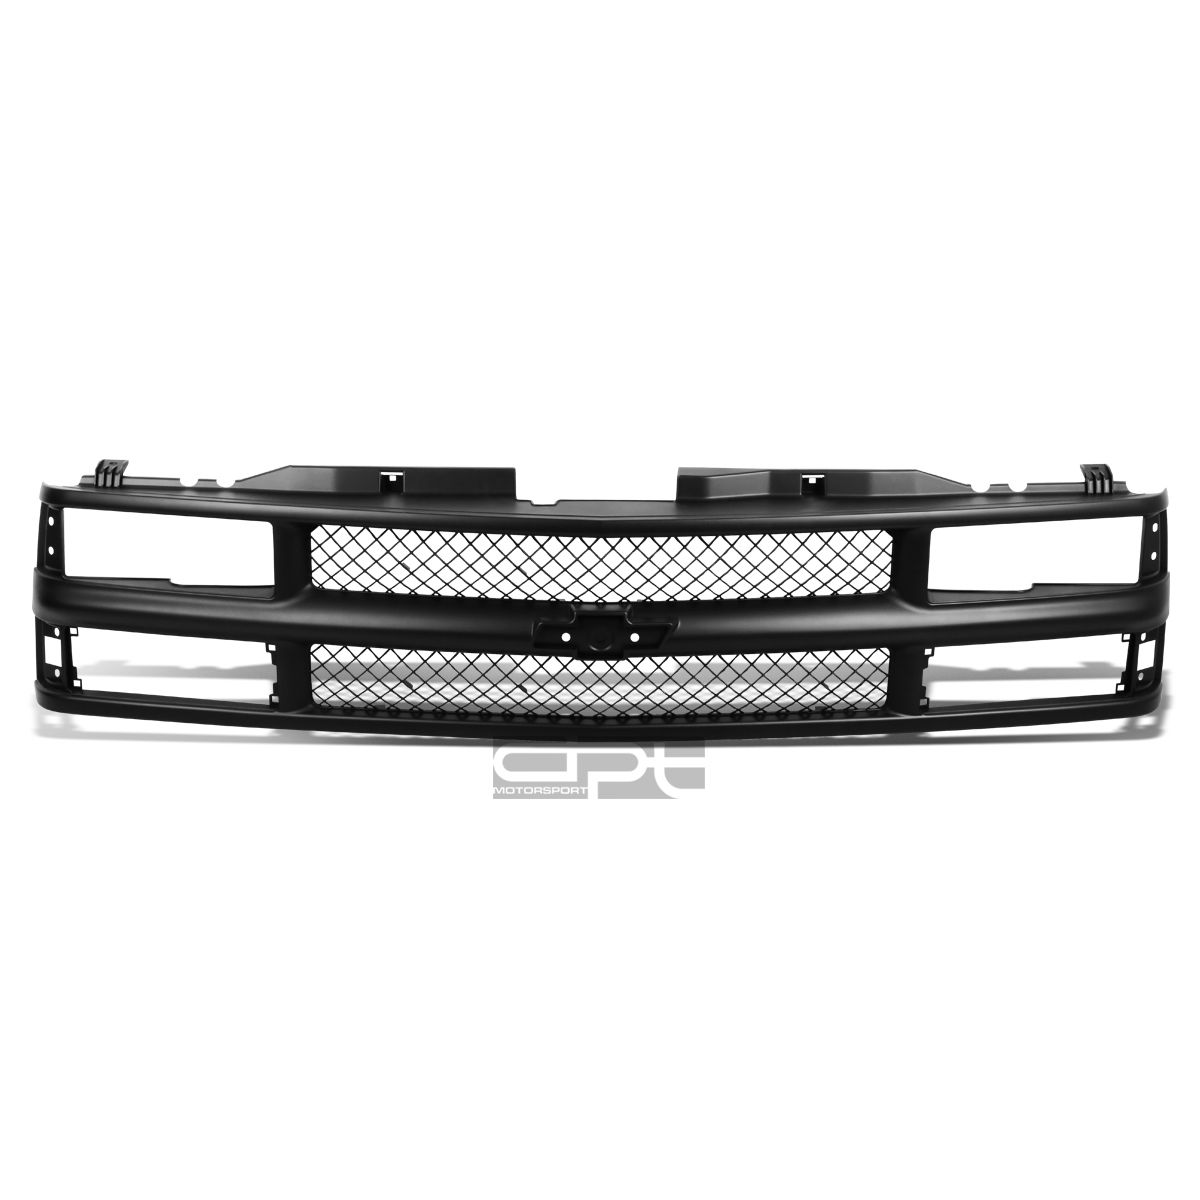 グリル FOR 94-00 CHEVY C10 / TAHOE / BLAZ ER BLACK ABSフロントバンパー/フードアッパーグリルガード FOR 94-00 CHEVY C10/TAHOE/BLAZER BLACK ABS FRONT BUMPER/HOOD UPPER GRILL GUARD